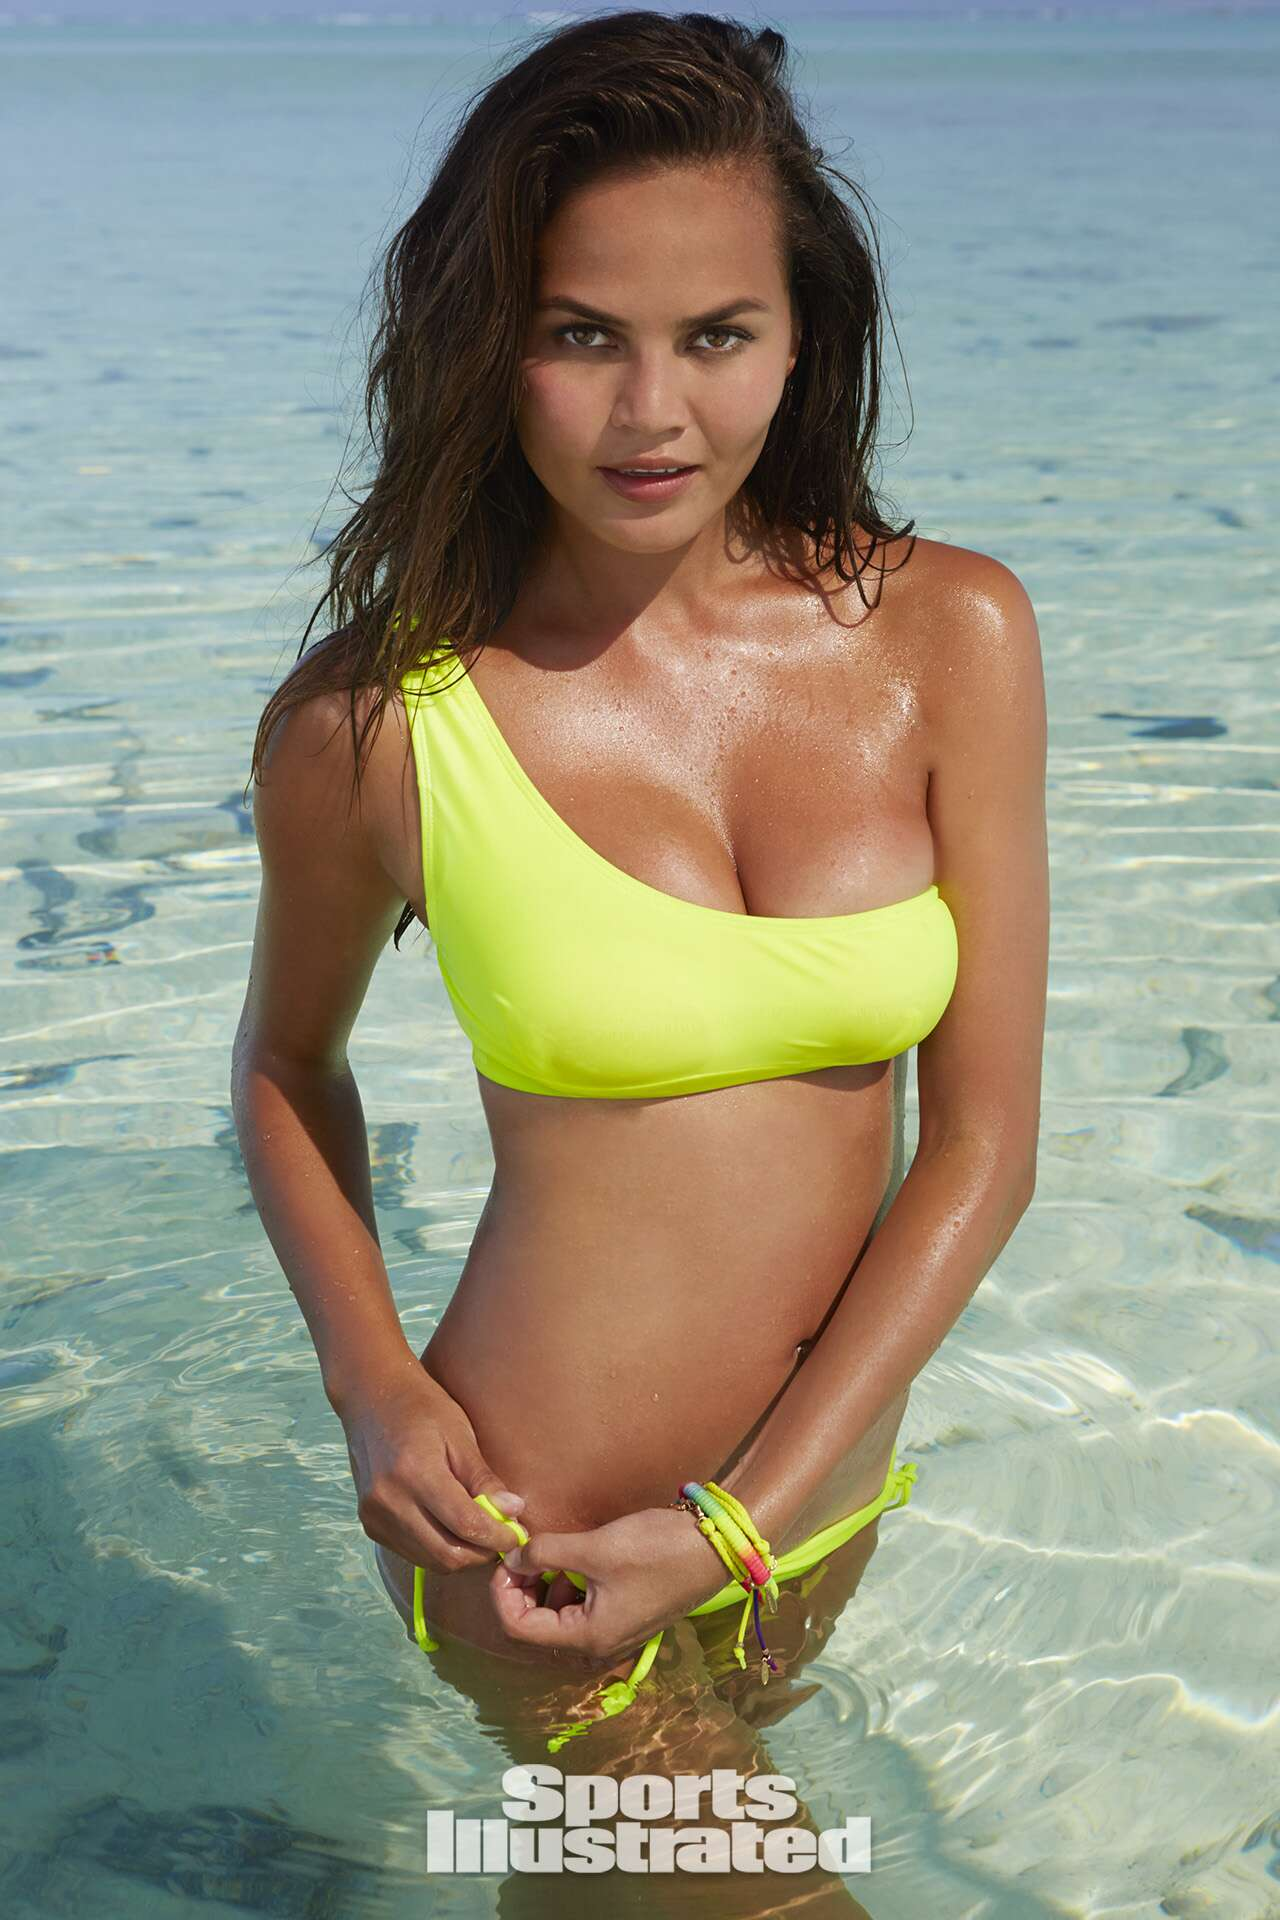 Chrissy Teigen 2014: Cook Islands